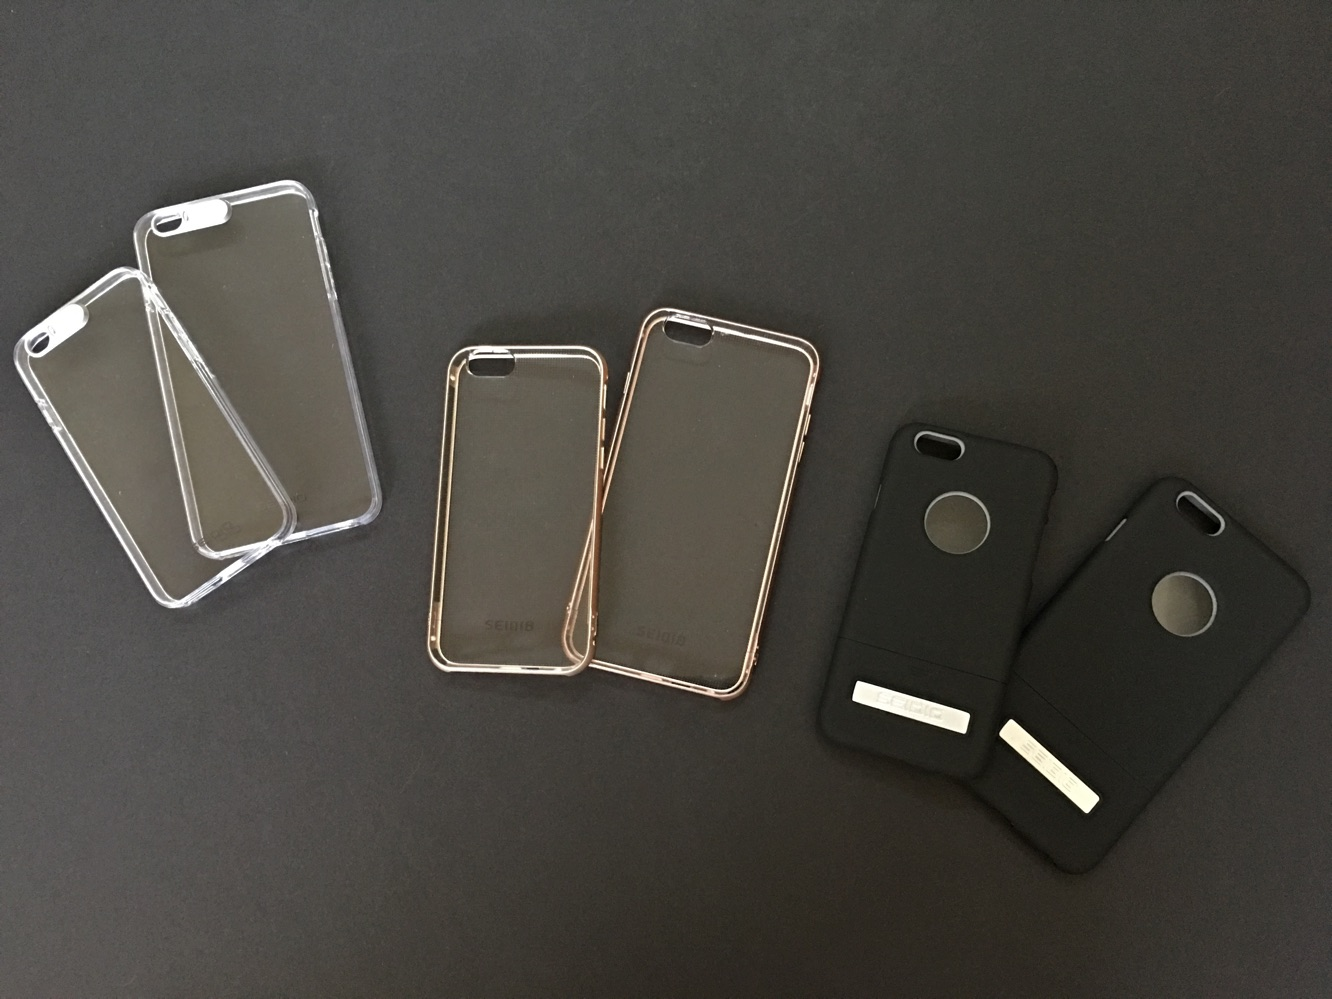 Review: Seidio Luma, Surface + Tetra for iPhone 6/6s and iPhone 6/6s Plus